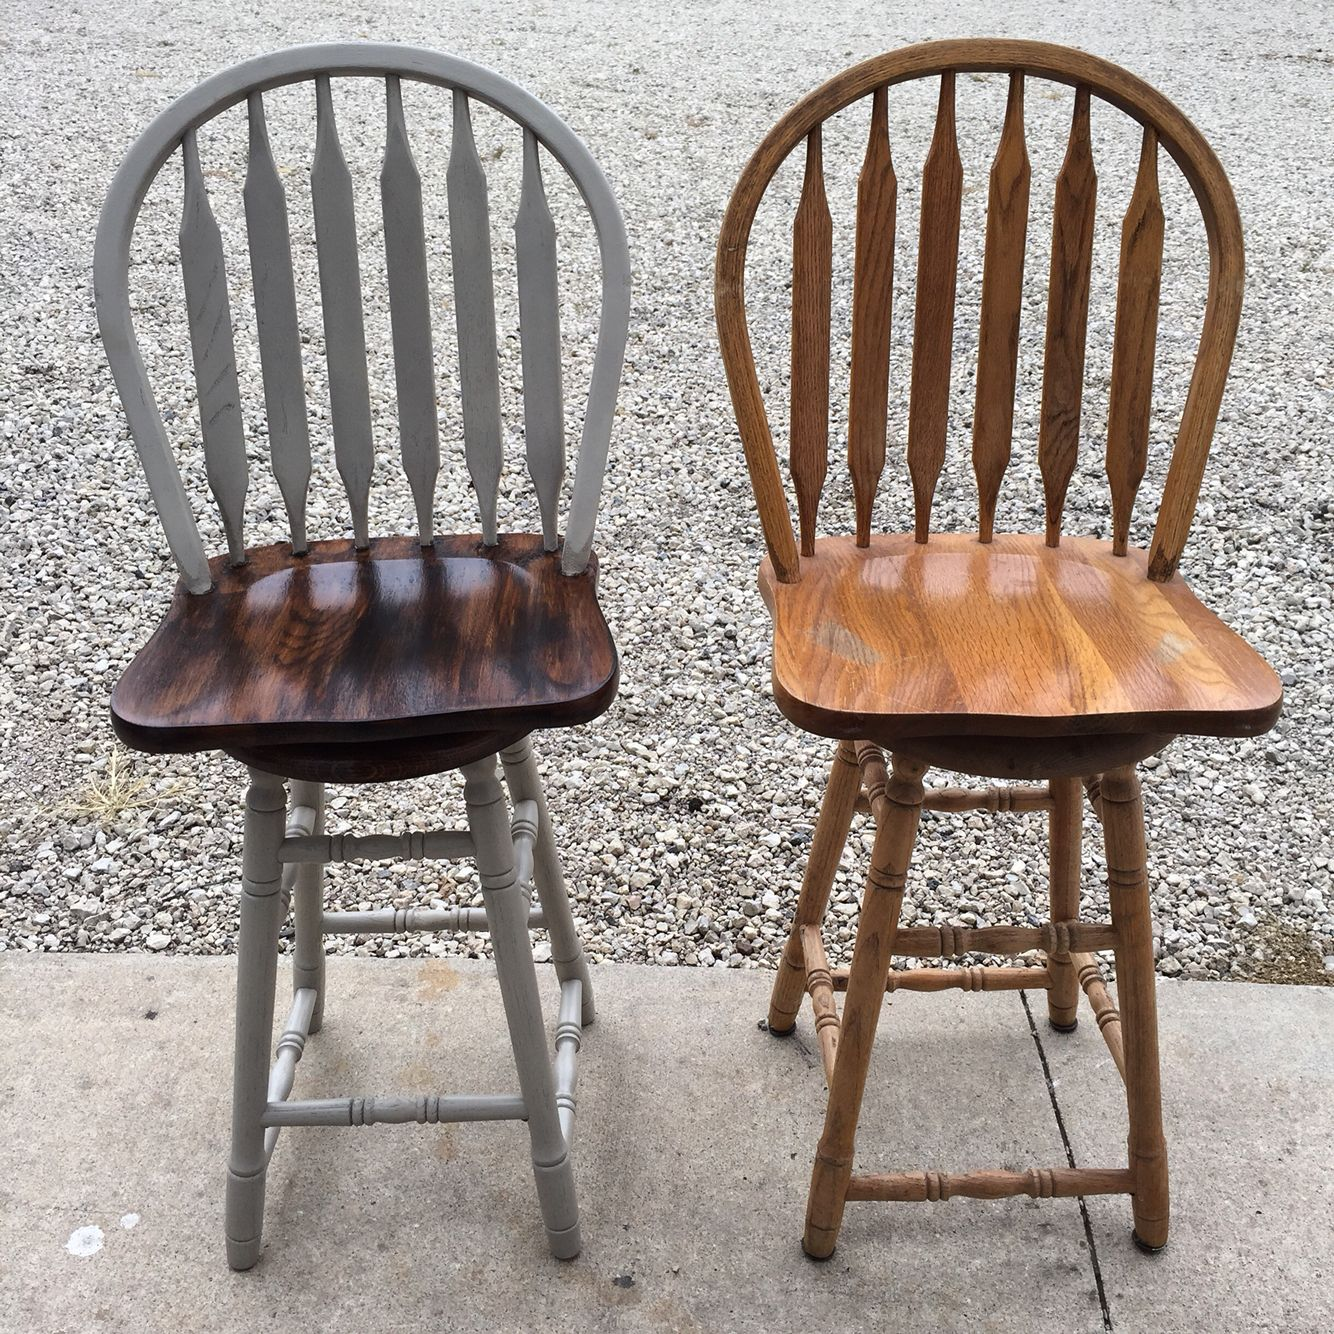 Plain Light Oak Bar Stools Transformed I Used Spray Paint Pebble From Ace And A Dark Walnut Stain